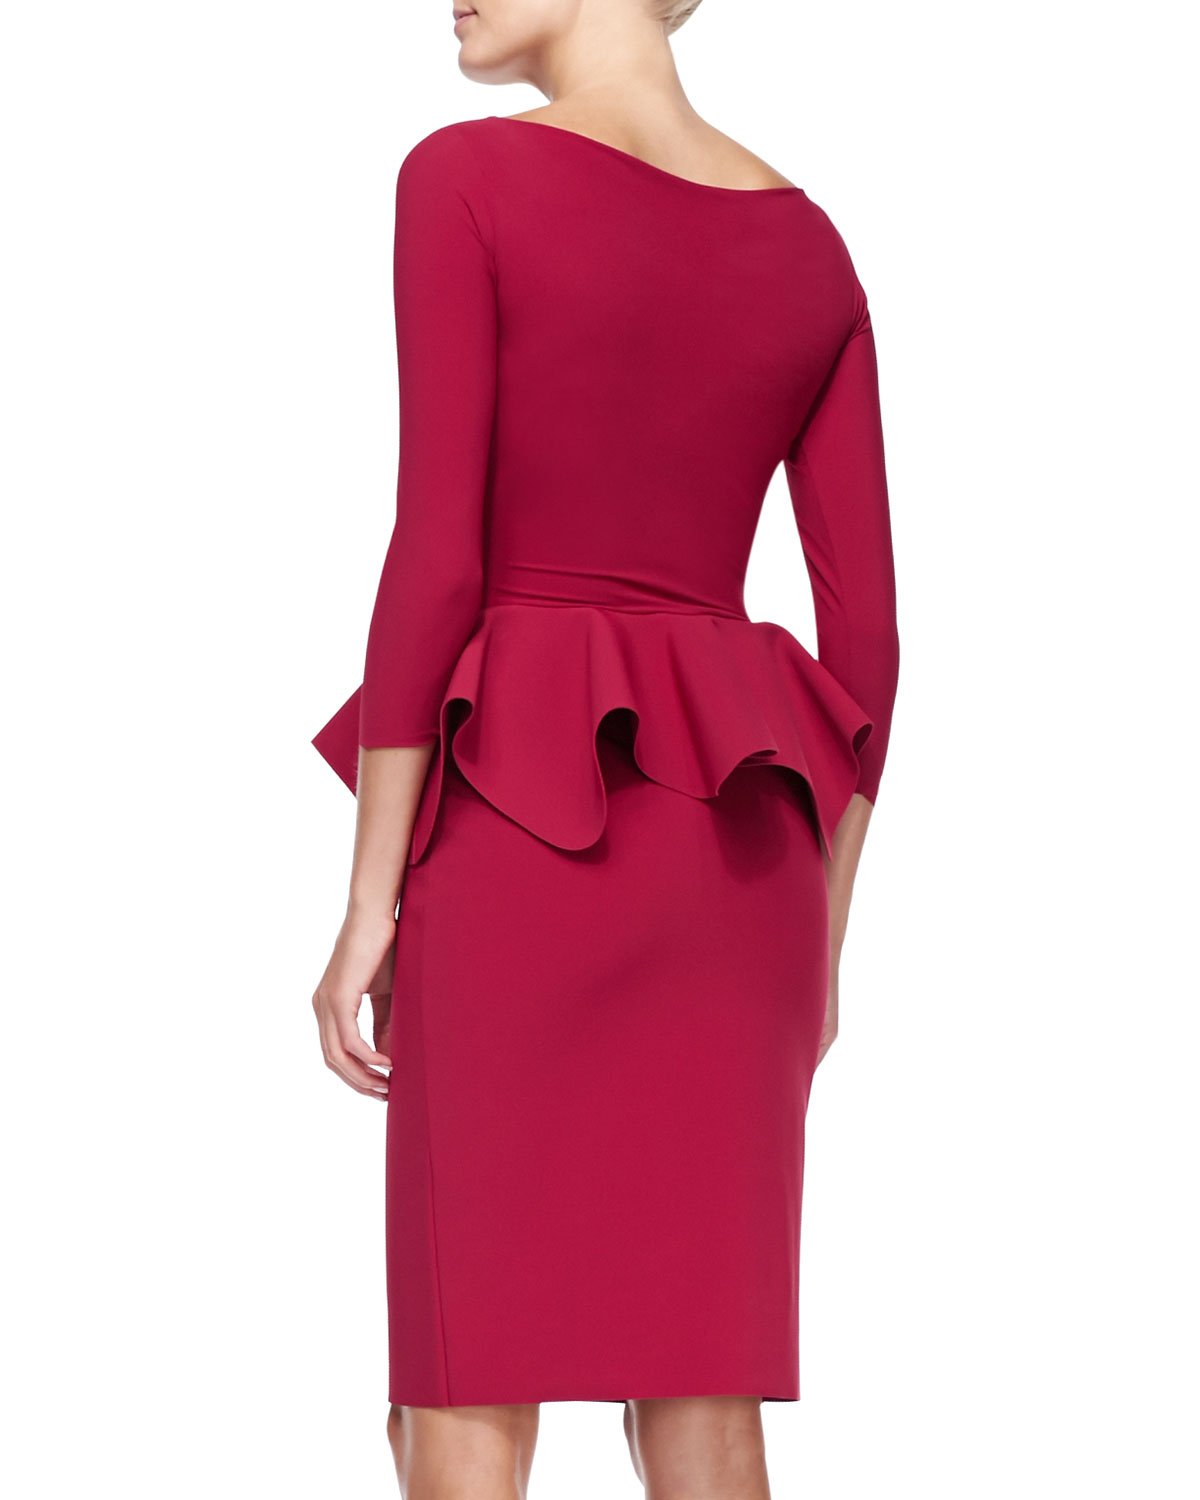 Chiara Boni The Most Popular Dress In America: La Petite Robe Di Chiara Boni Eden 3/4-sleeve Peplum